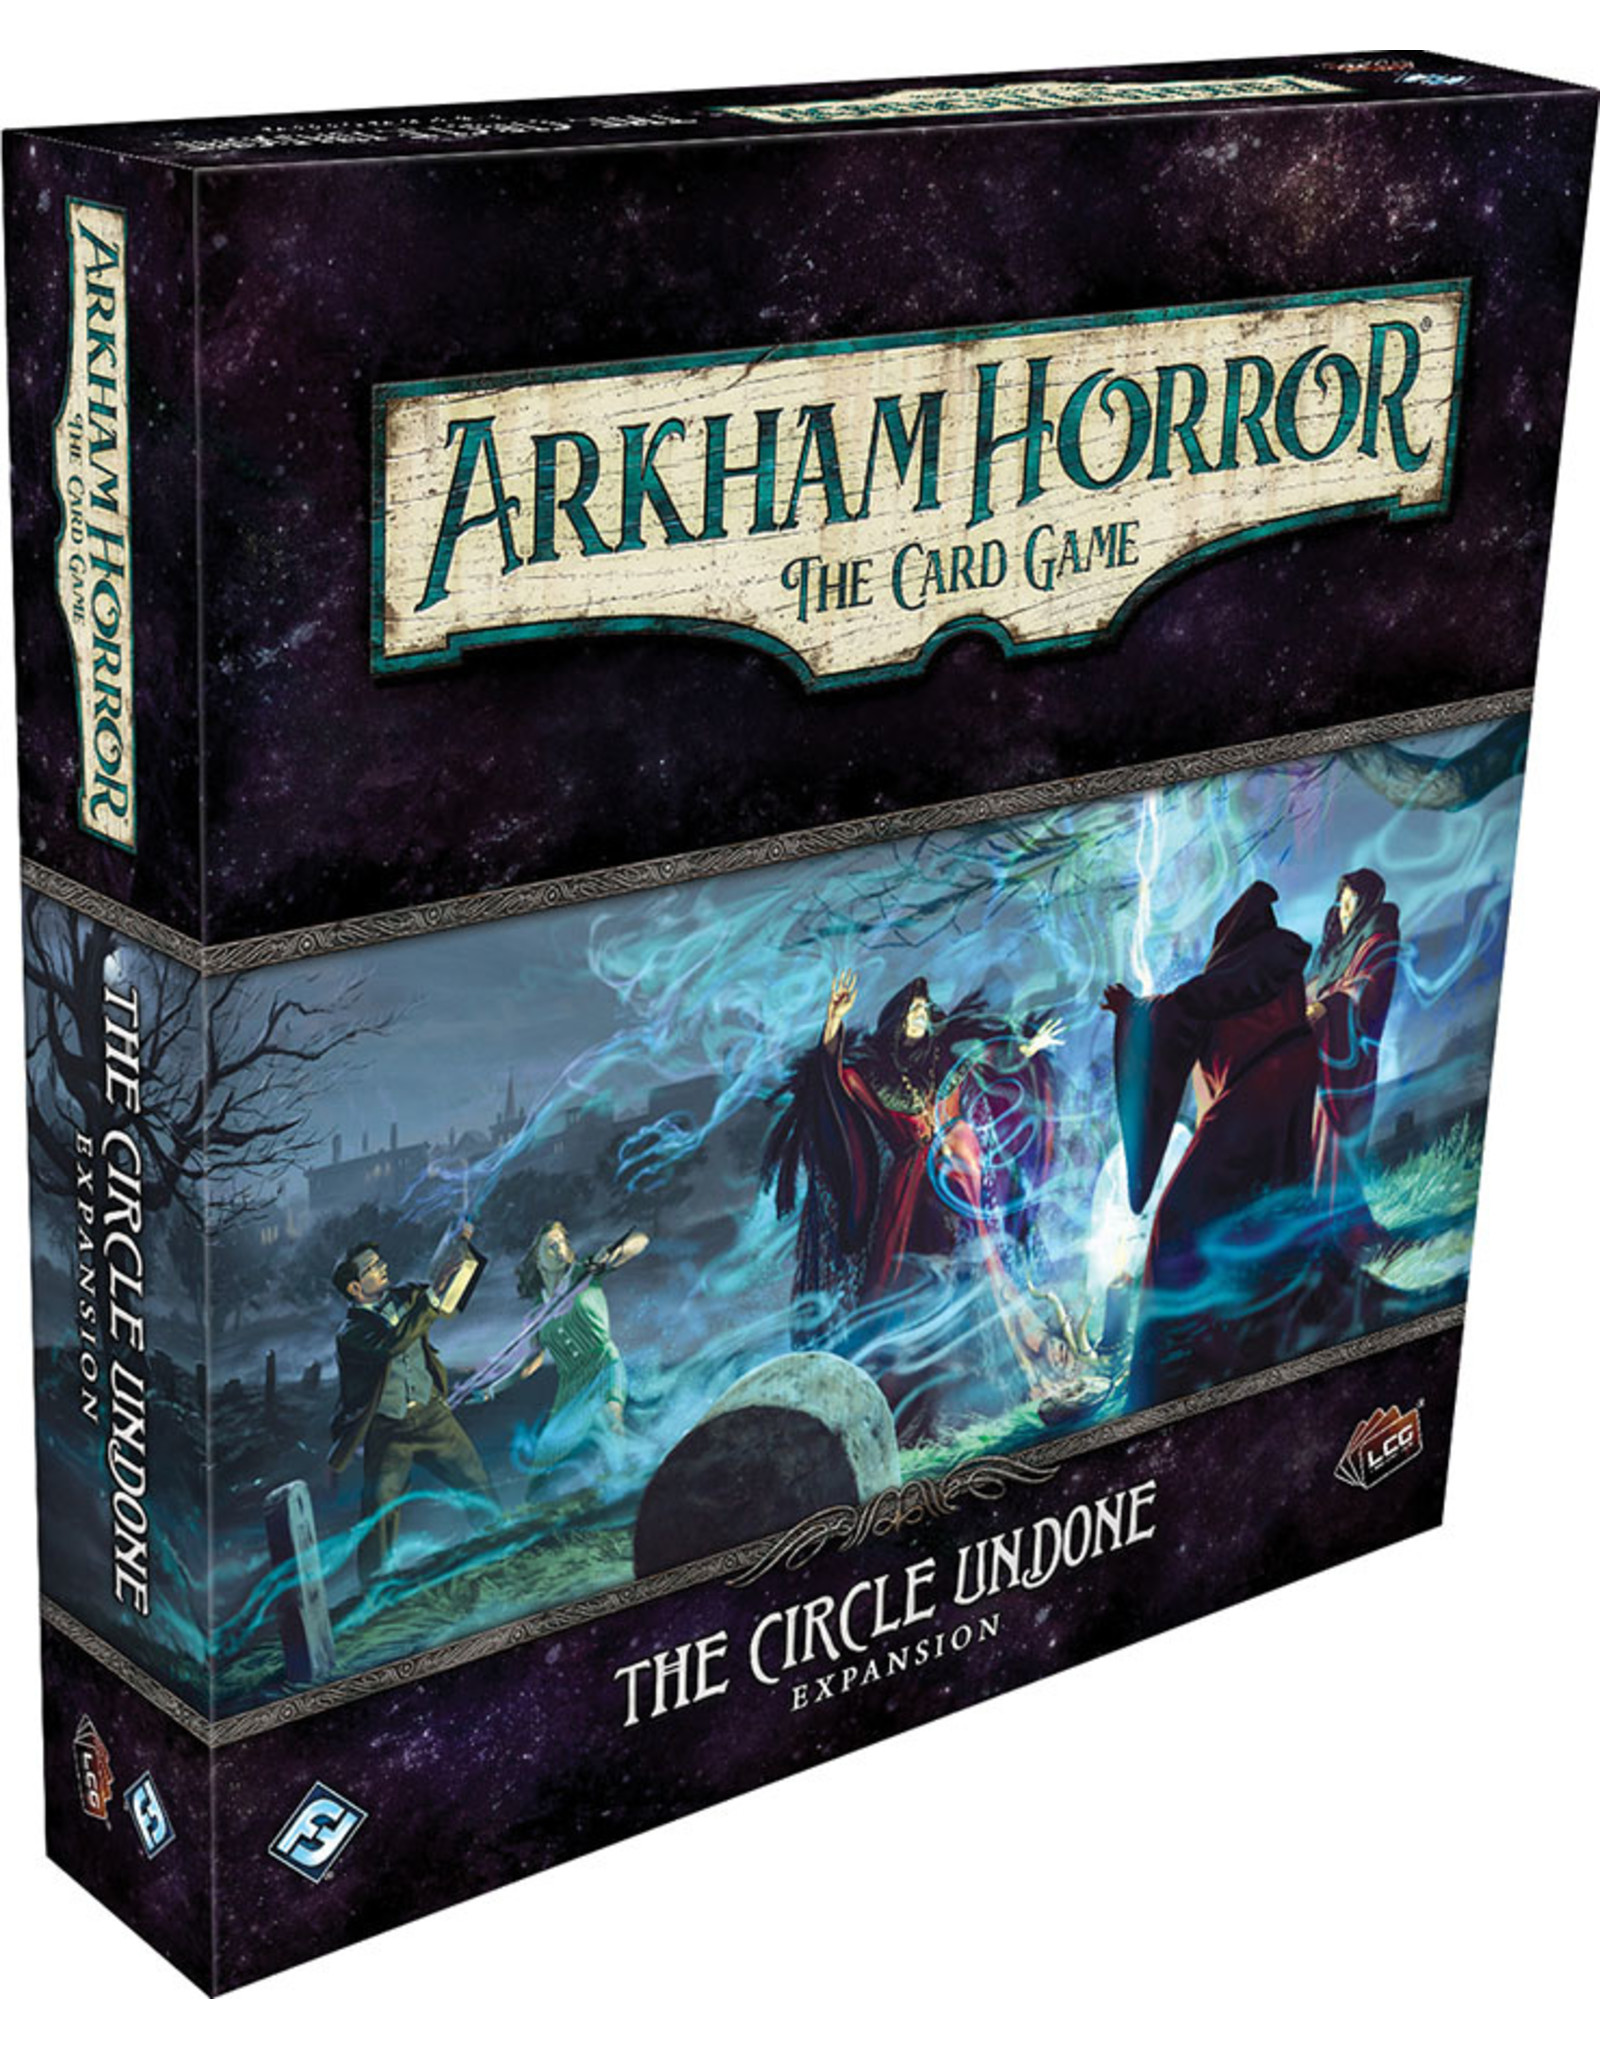 Fantasy Flight Games Arkham Horror LCG: The Circle Undone Expansion